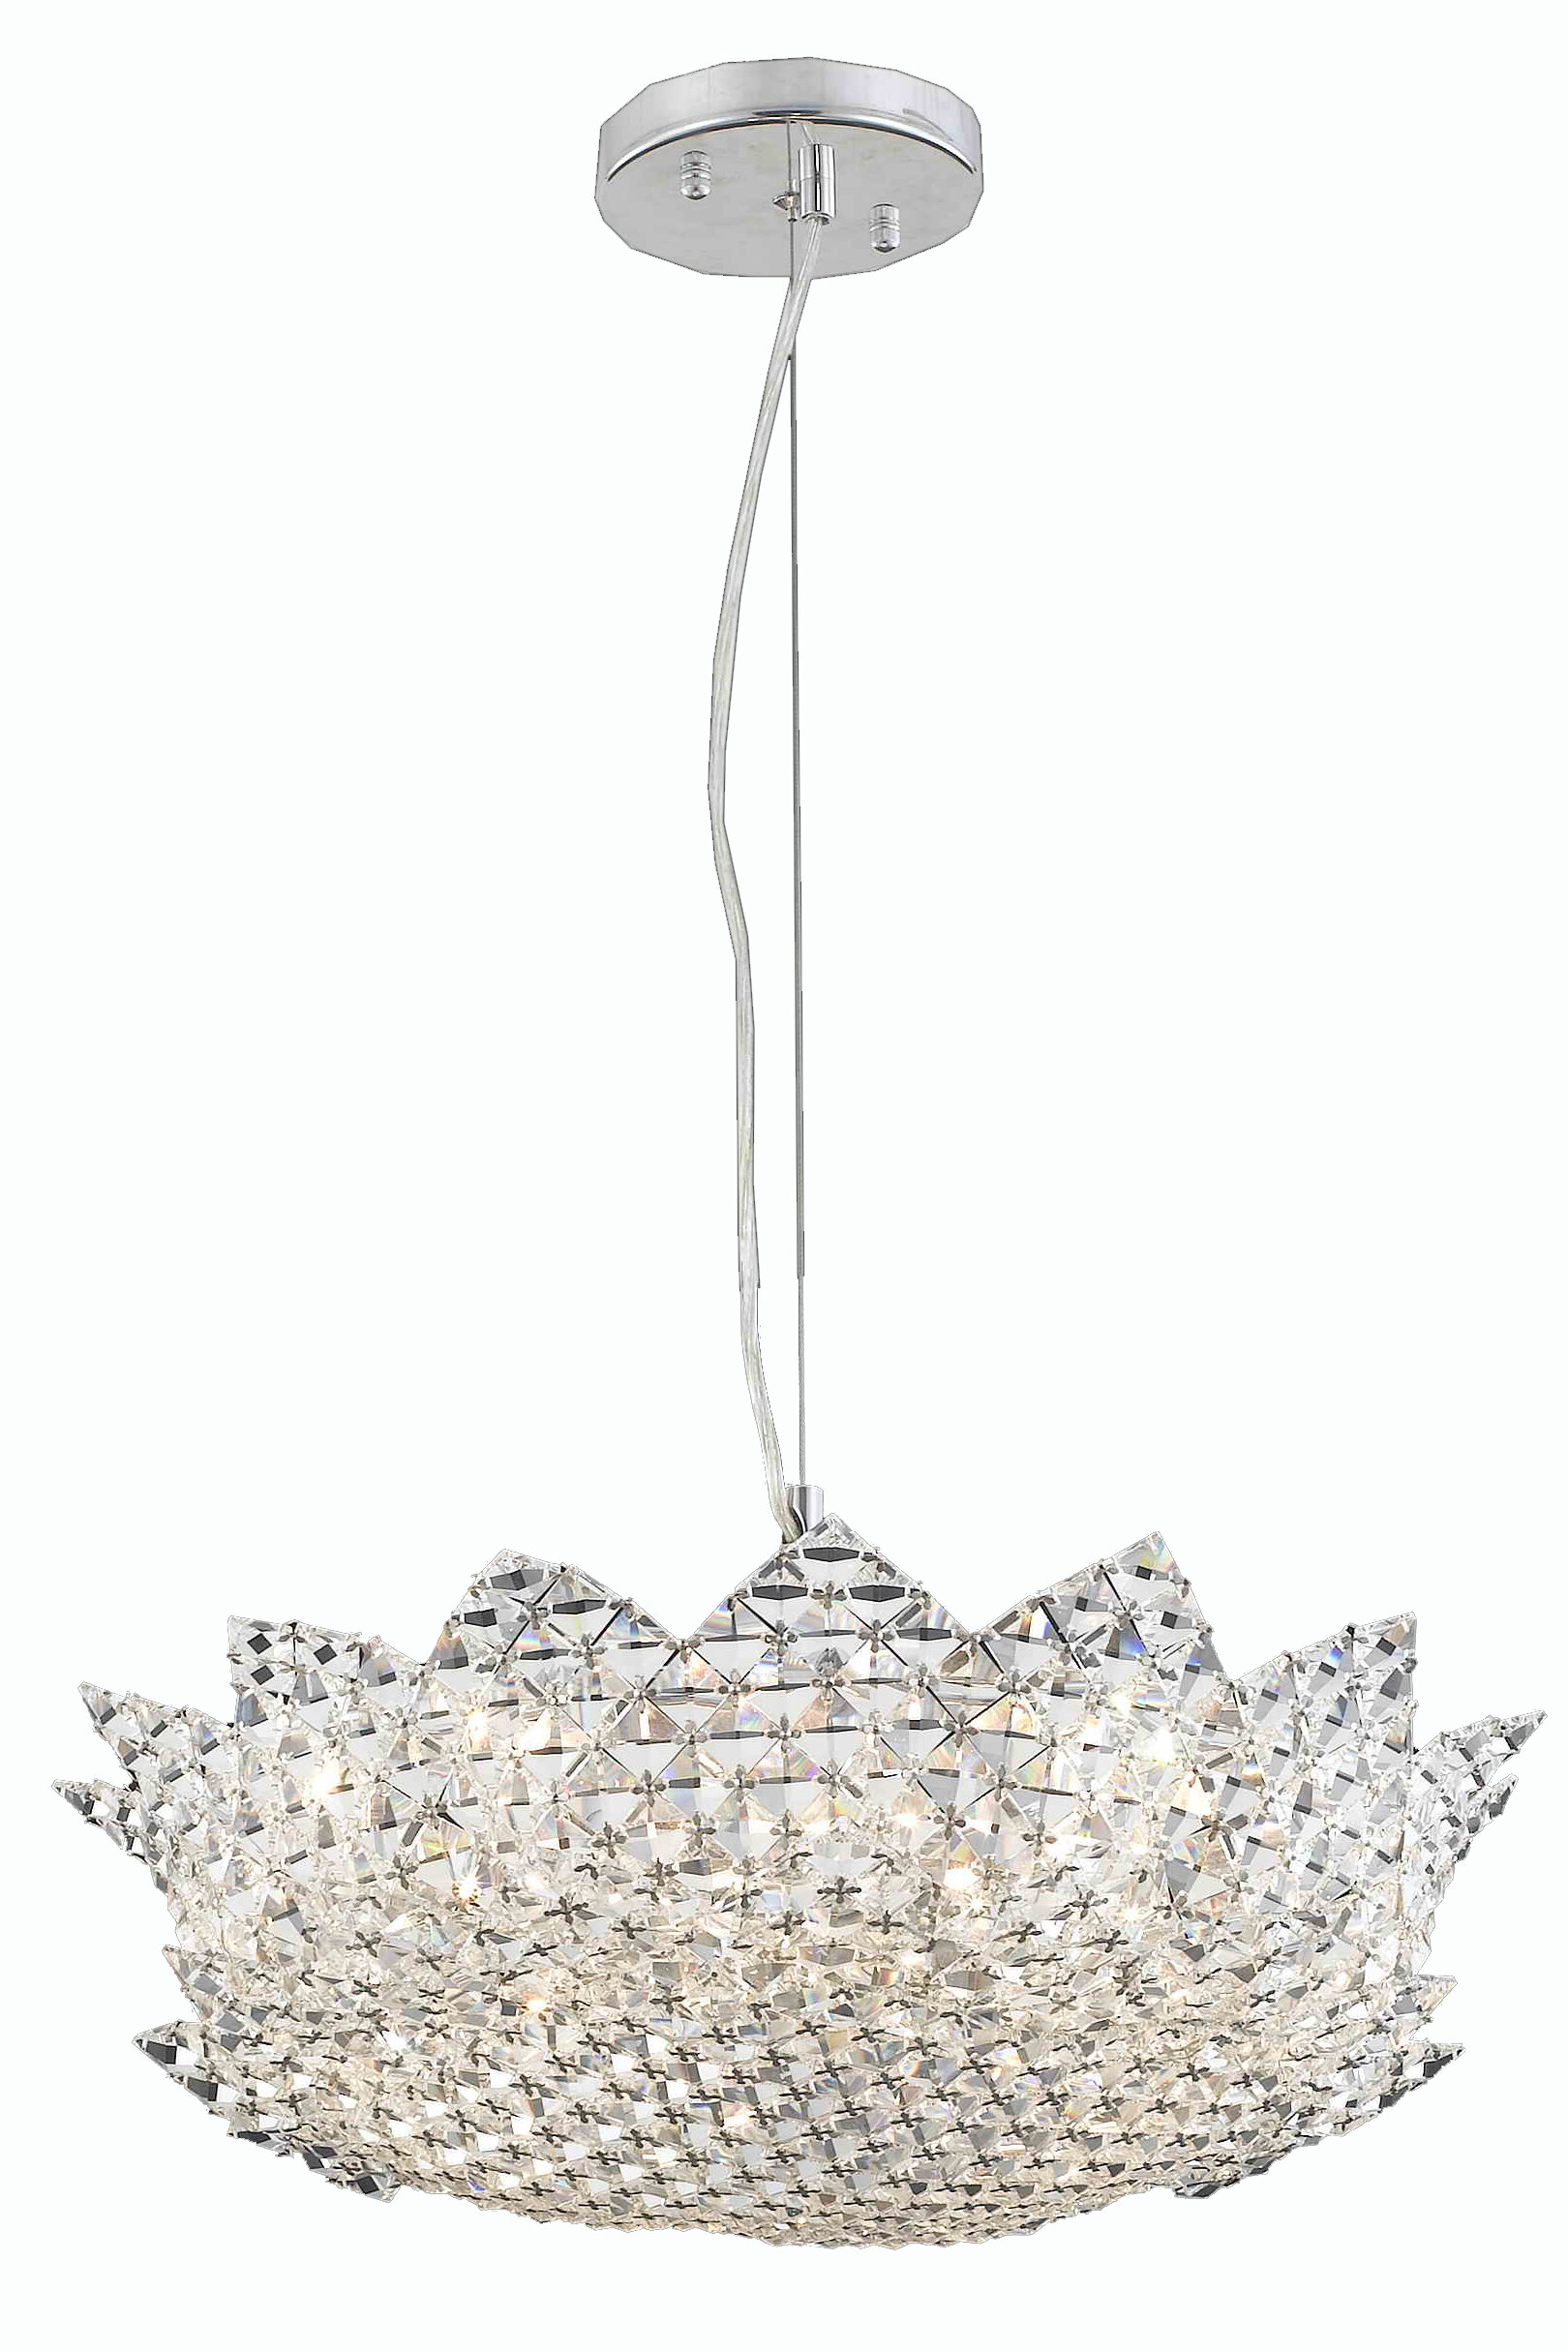 crystal category light bedroom dining room ceiling chandelier chandeliers product